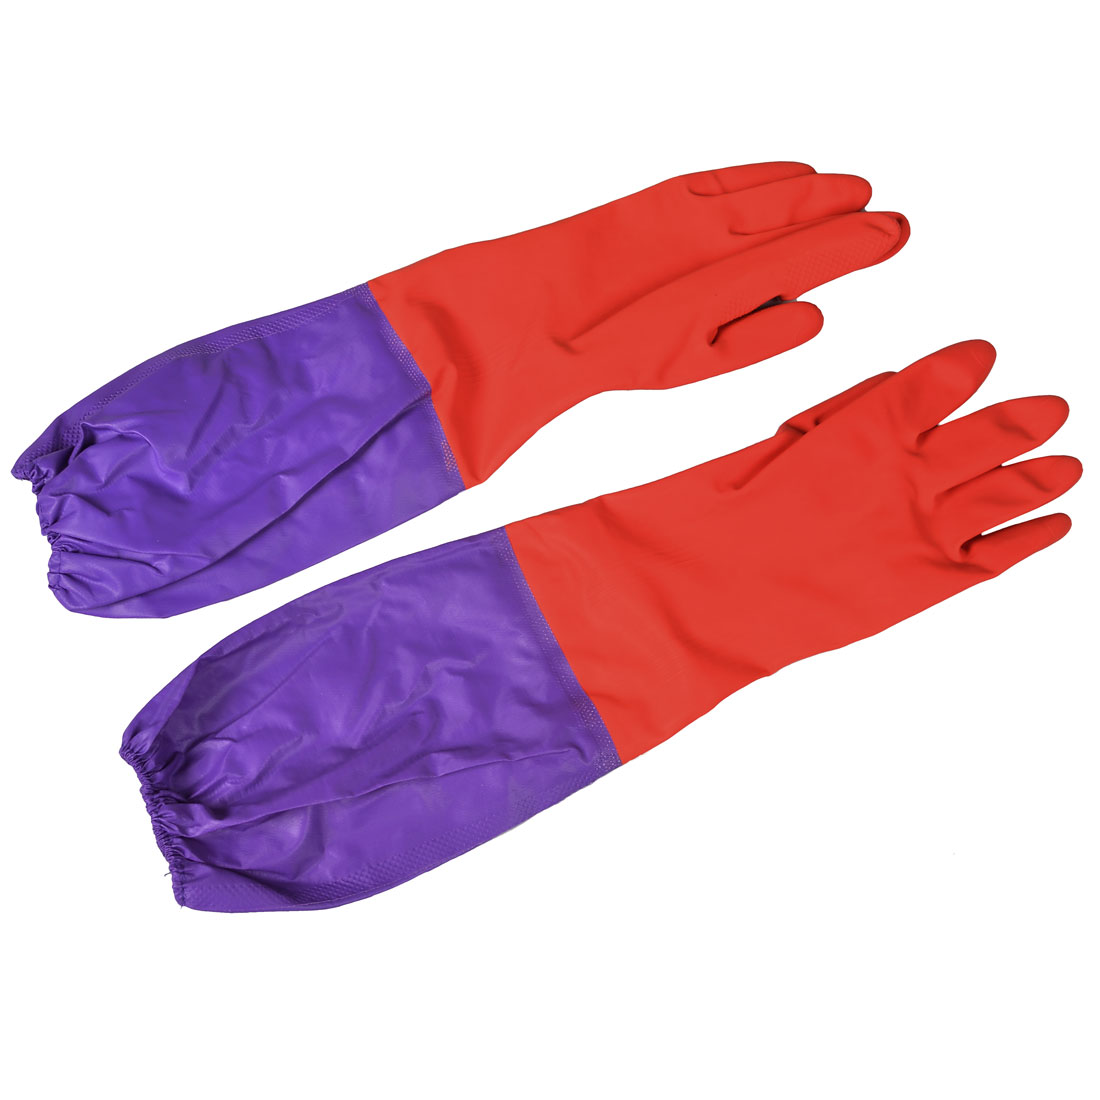 Pair Household Dish Cleaning Elbow Long Nonslip Full Fingers Latex Gloves